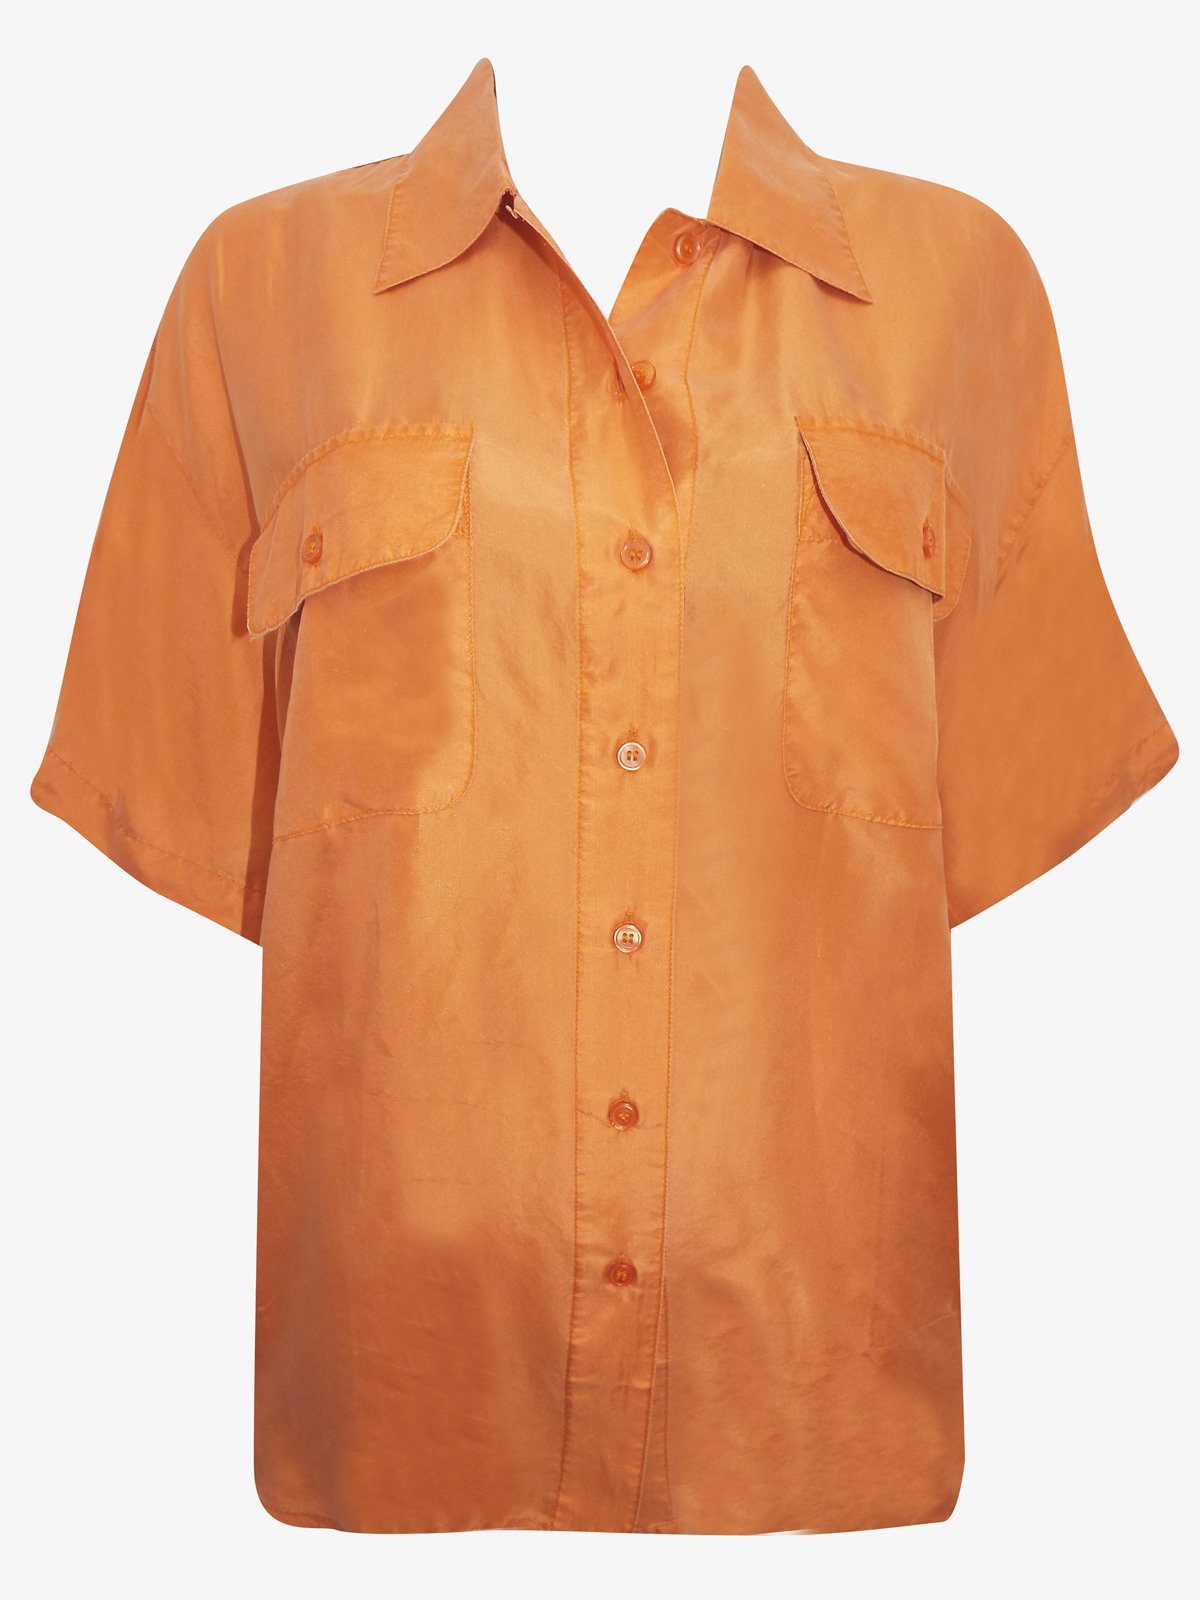 Cocoon ORANGE Silk Button Through Short Sleeve Blouse - UK Size 16 to 20